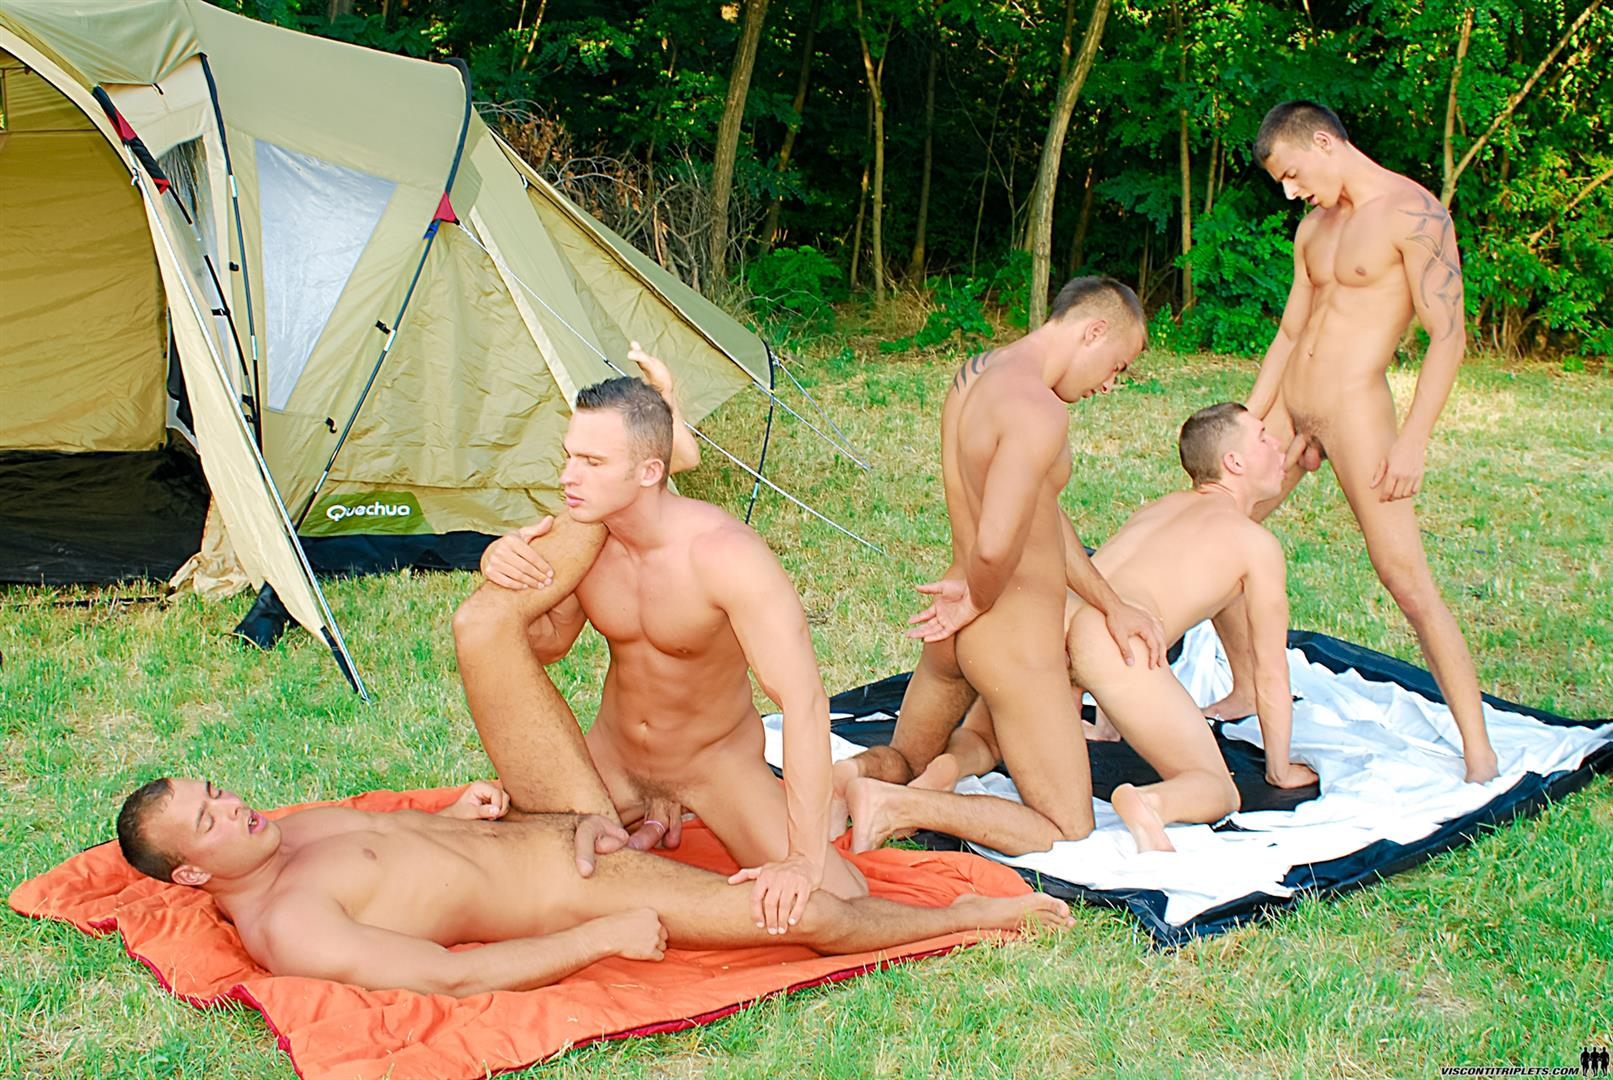 Visconti Triplets Jason Visconti Jimmy Visconti Joey Visconti Giuseppe Pardi Fucking During A Camping Trip Amateur Gay Porn 14 Visconti Triplets Tag Team Some Muscle Ass While Camping